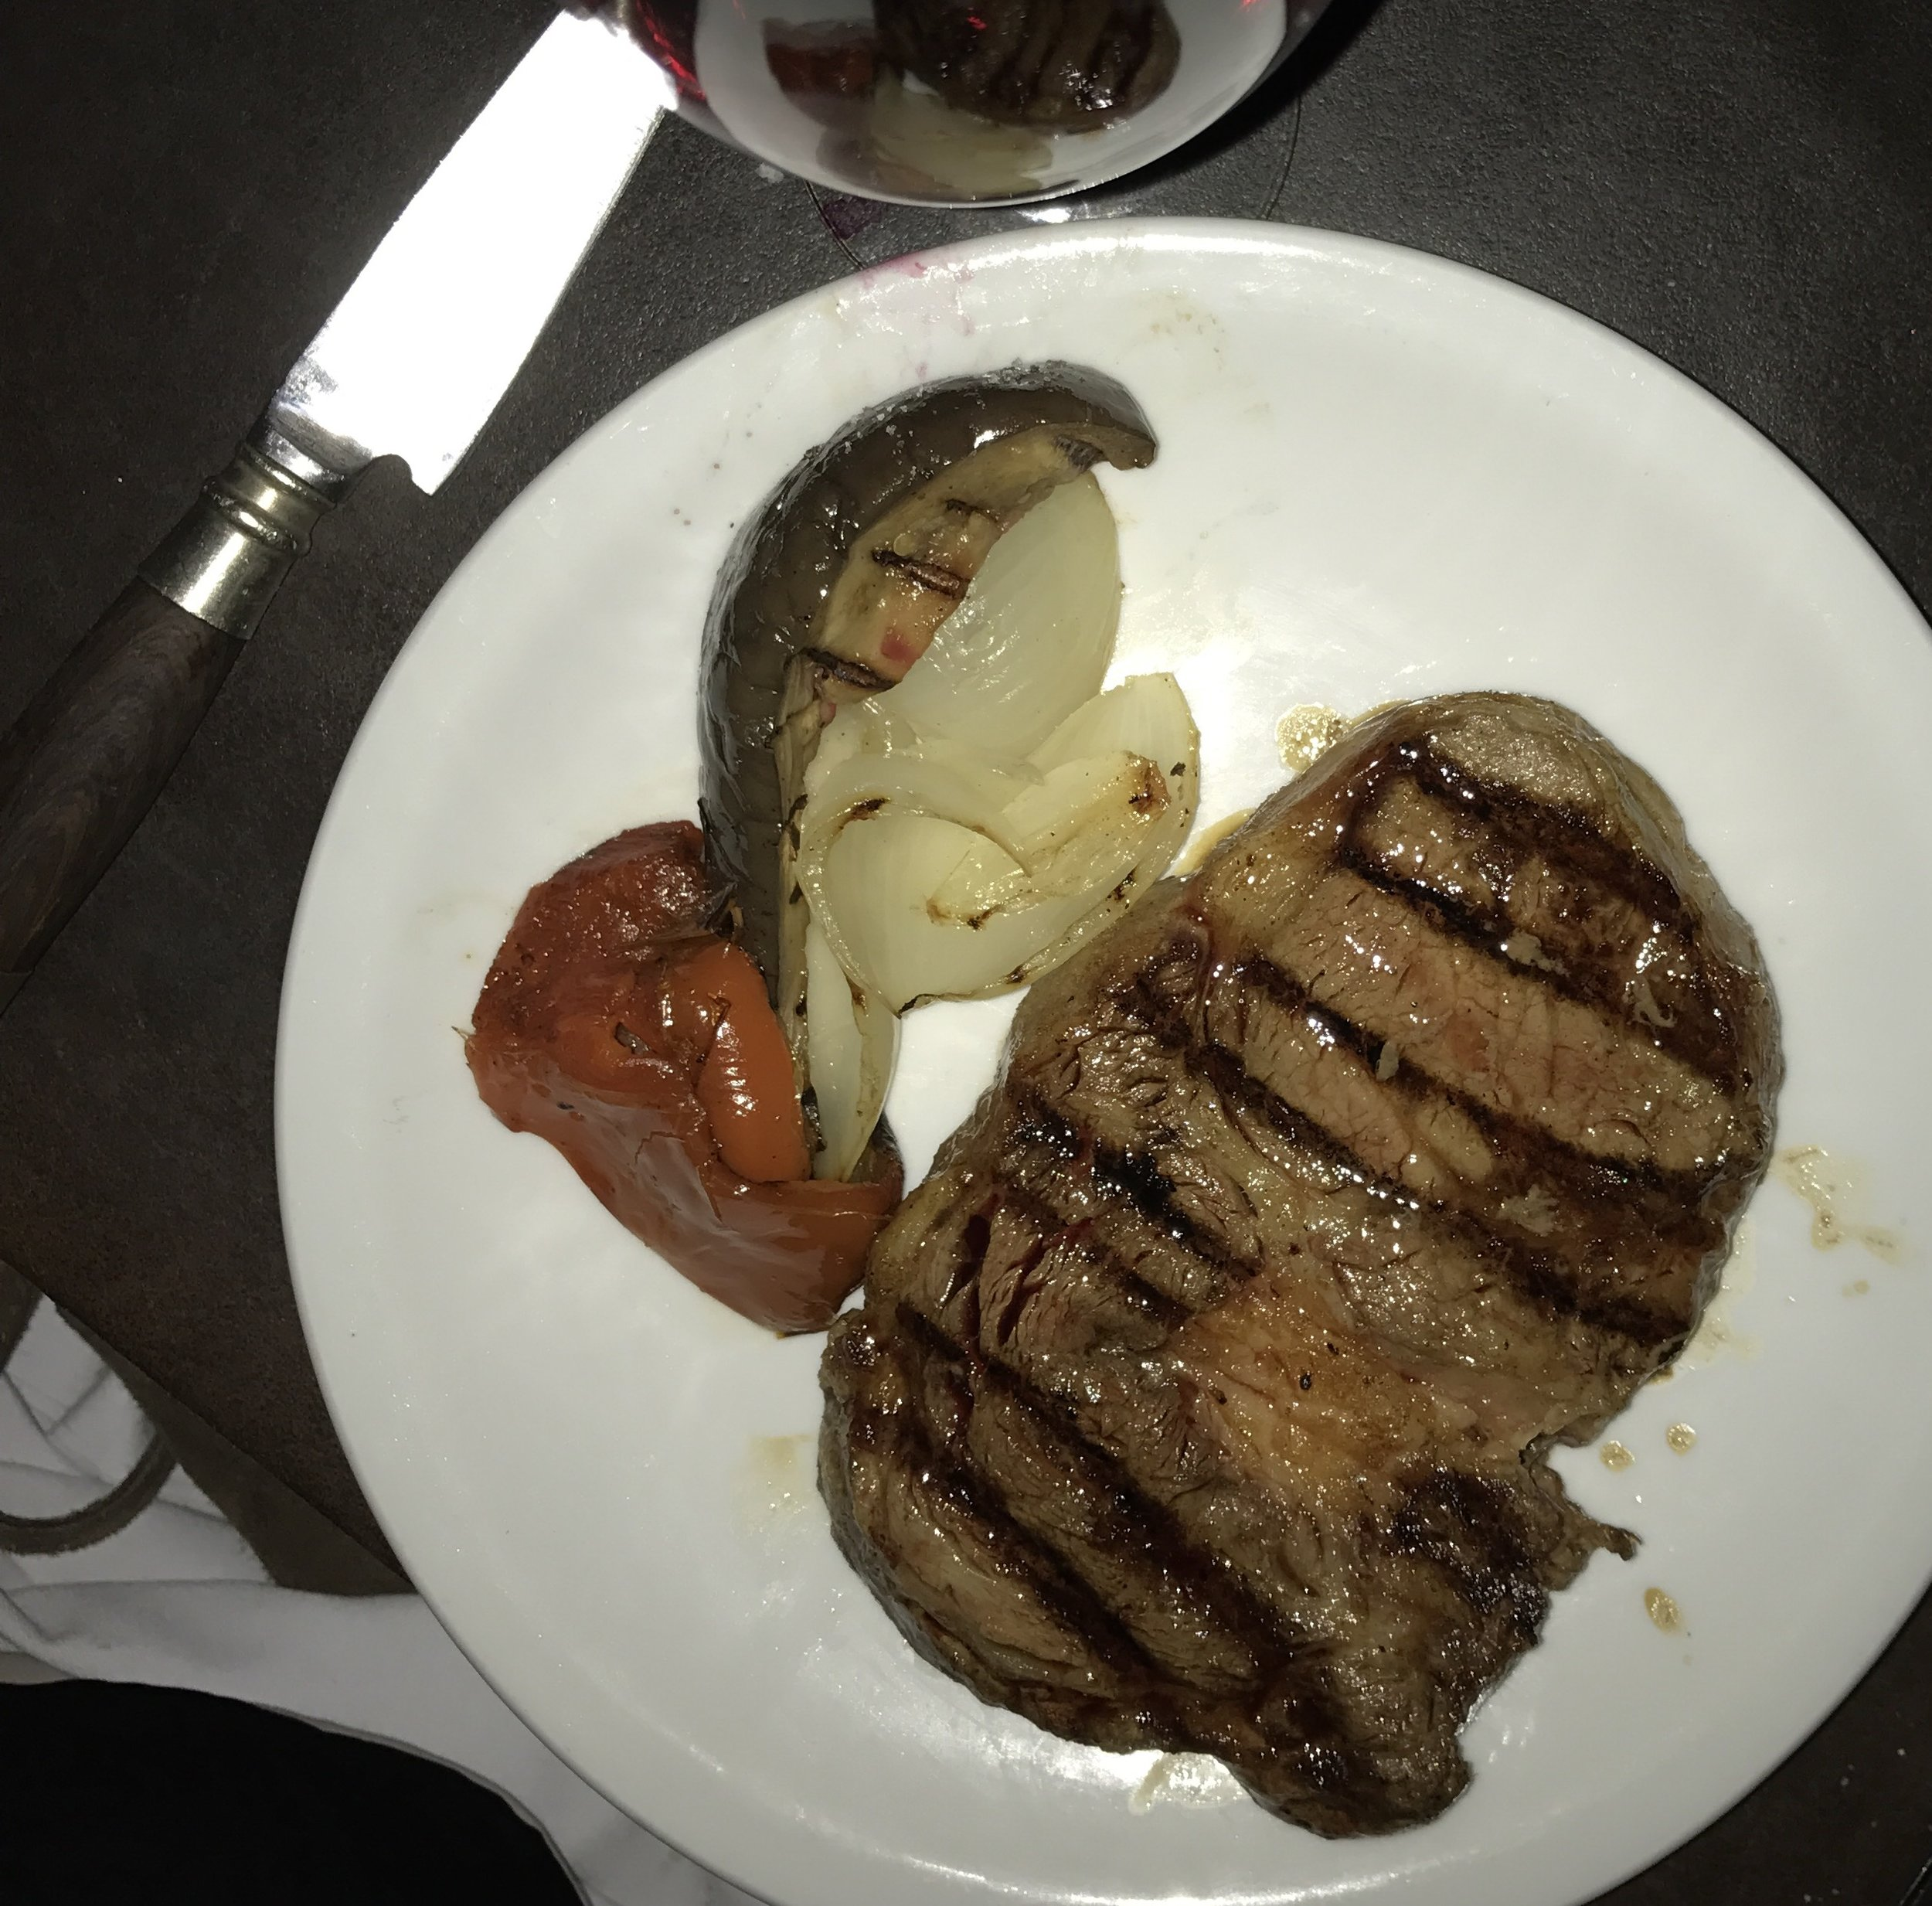 This is not a great picture of the steak but the lighting was terrible